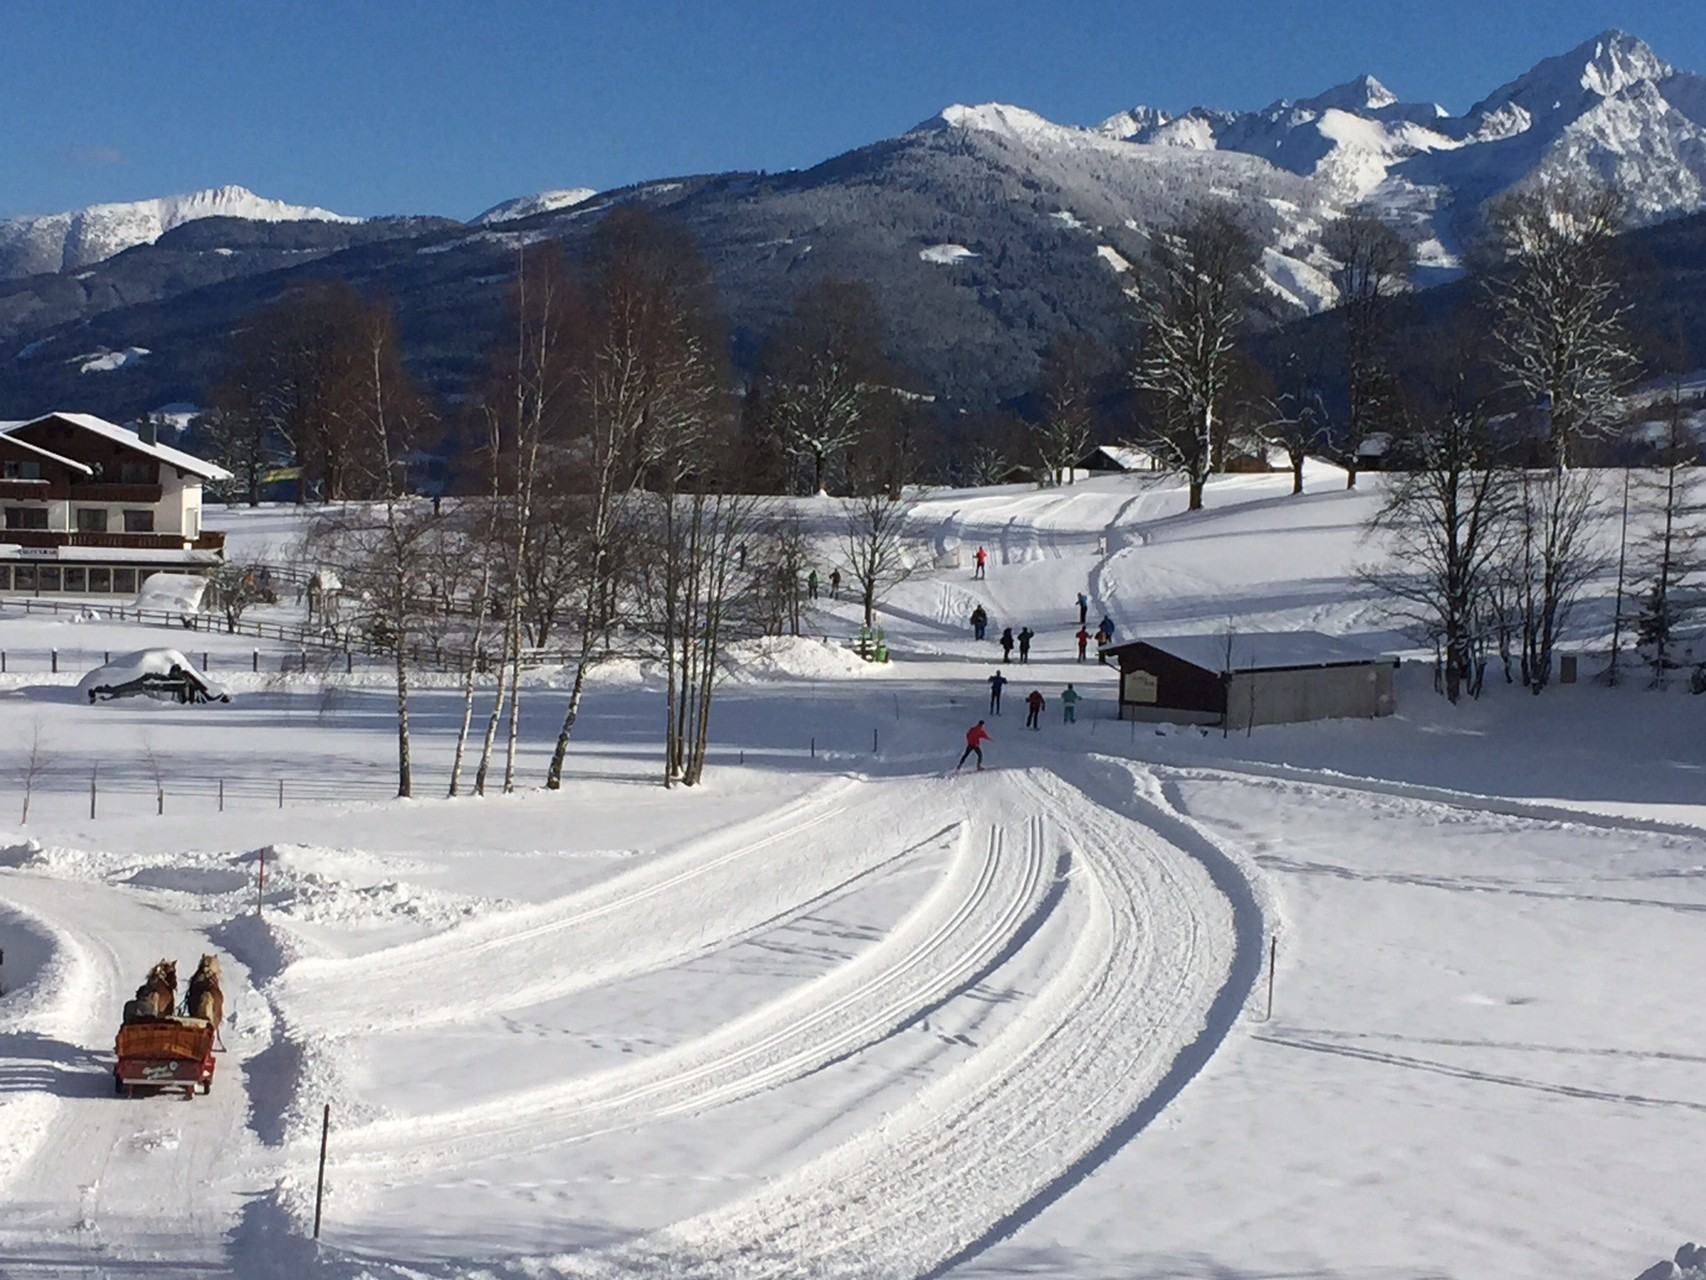 The langlauf piste and winter walking path are next to the house